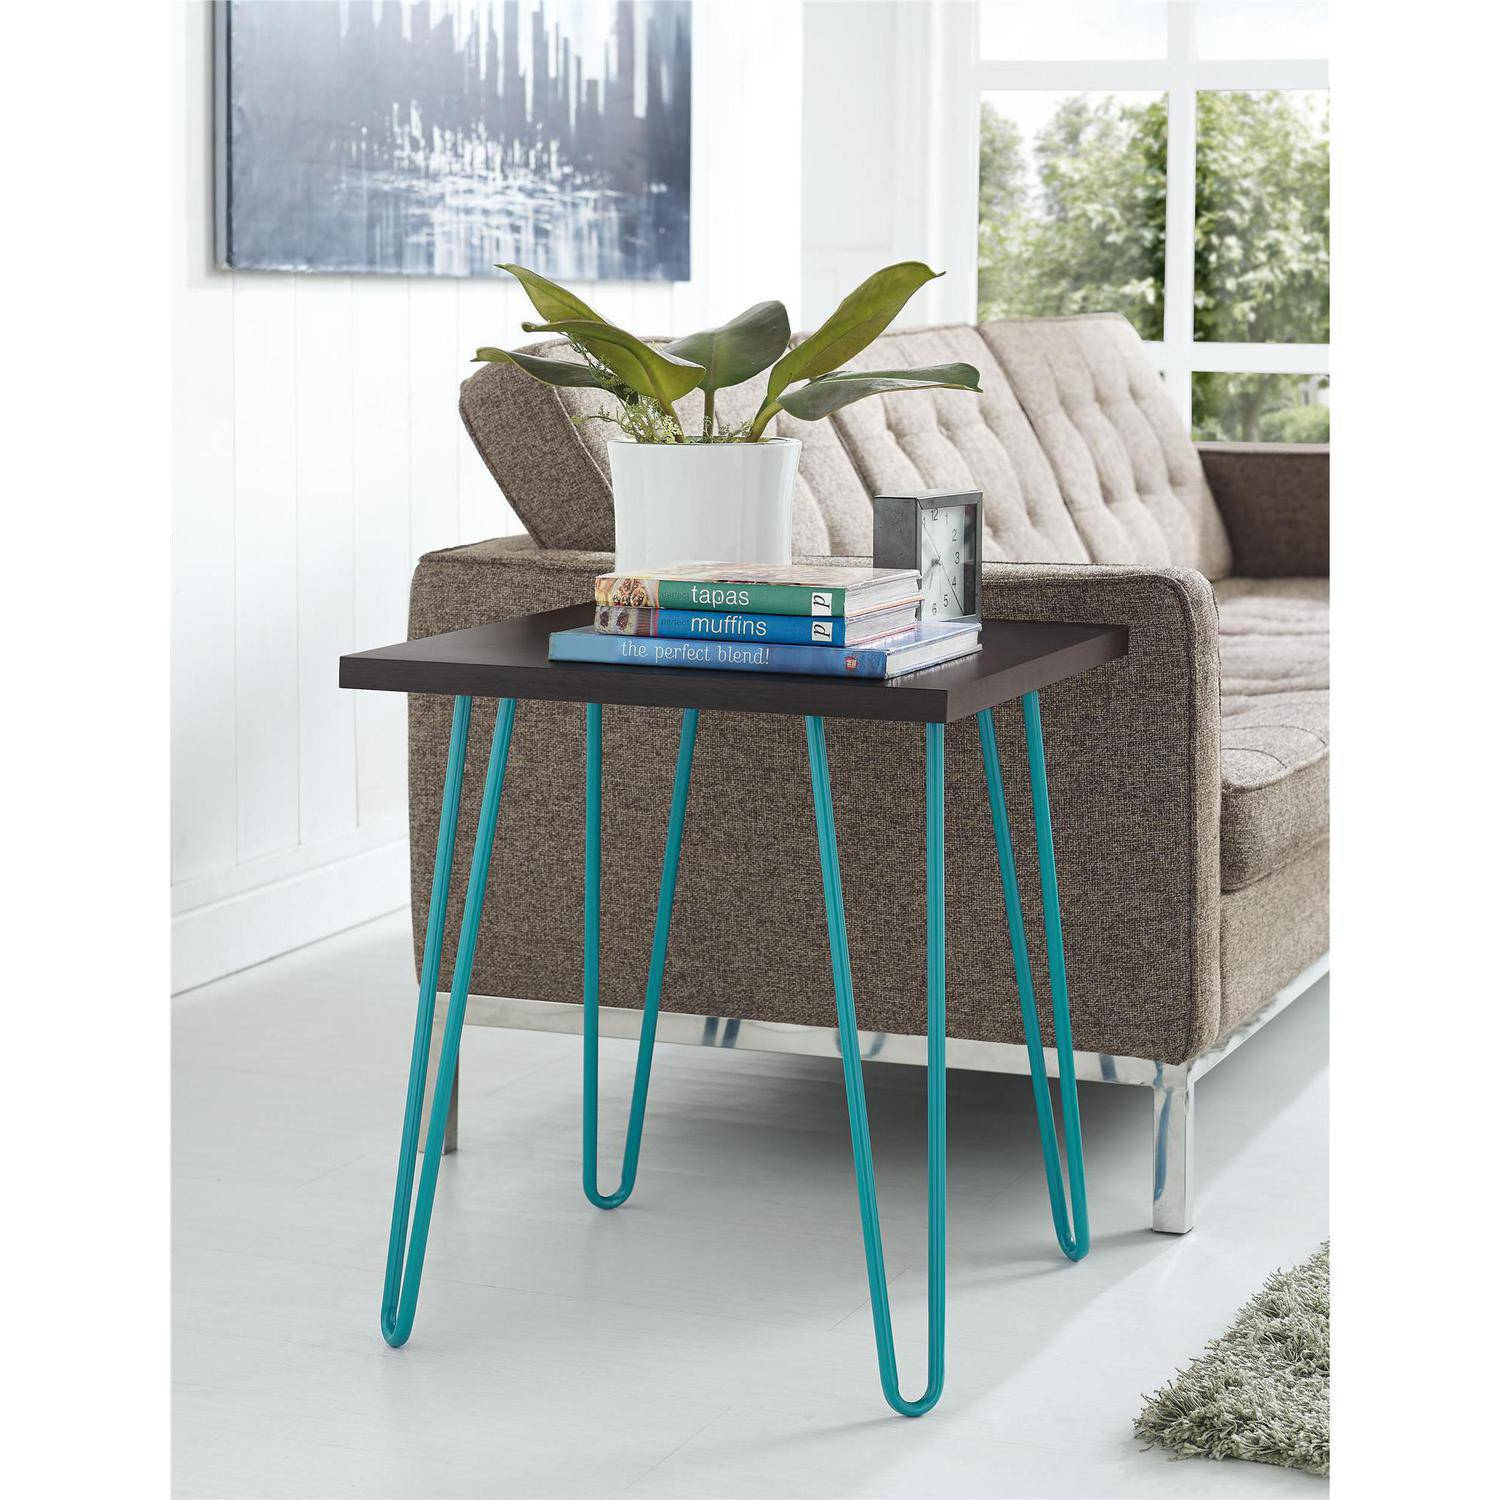 awesome teal metal end table sign depot frame for glass adjustable indoor folding lamp tree base granite tire contemporary diy bunnings round toppers mosaic tabletop legs top and